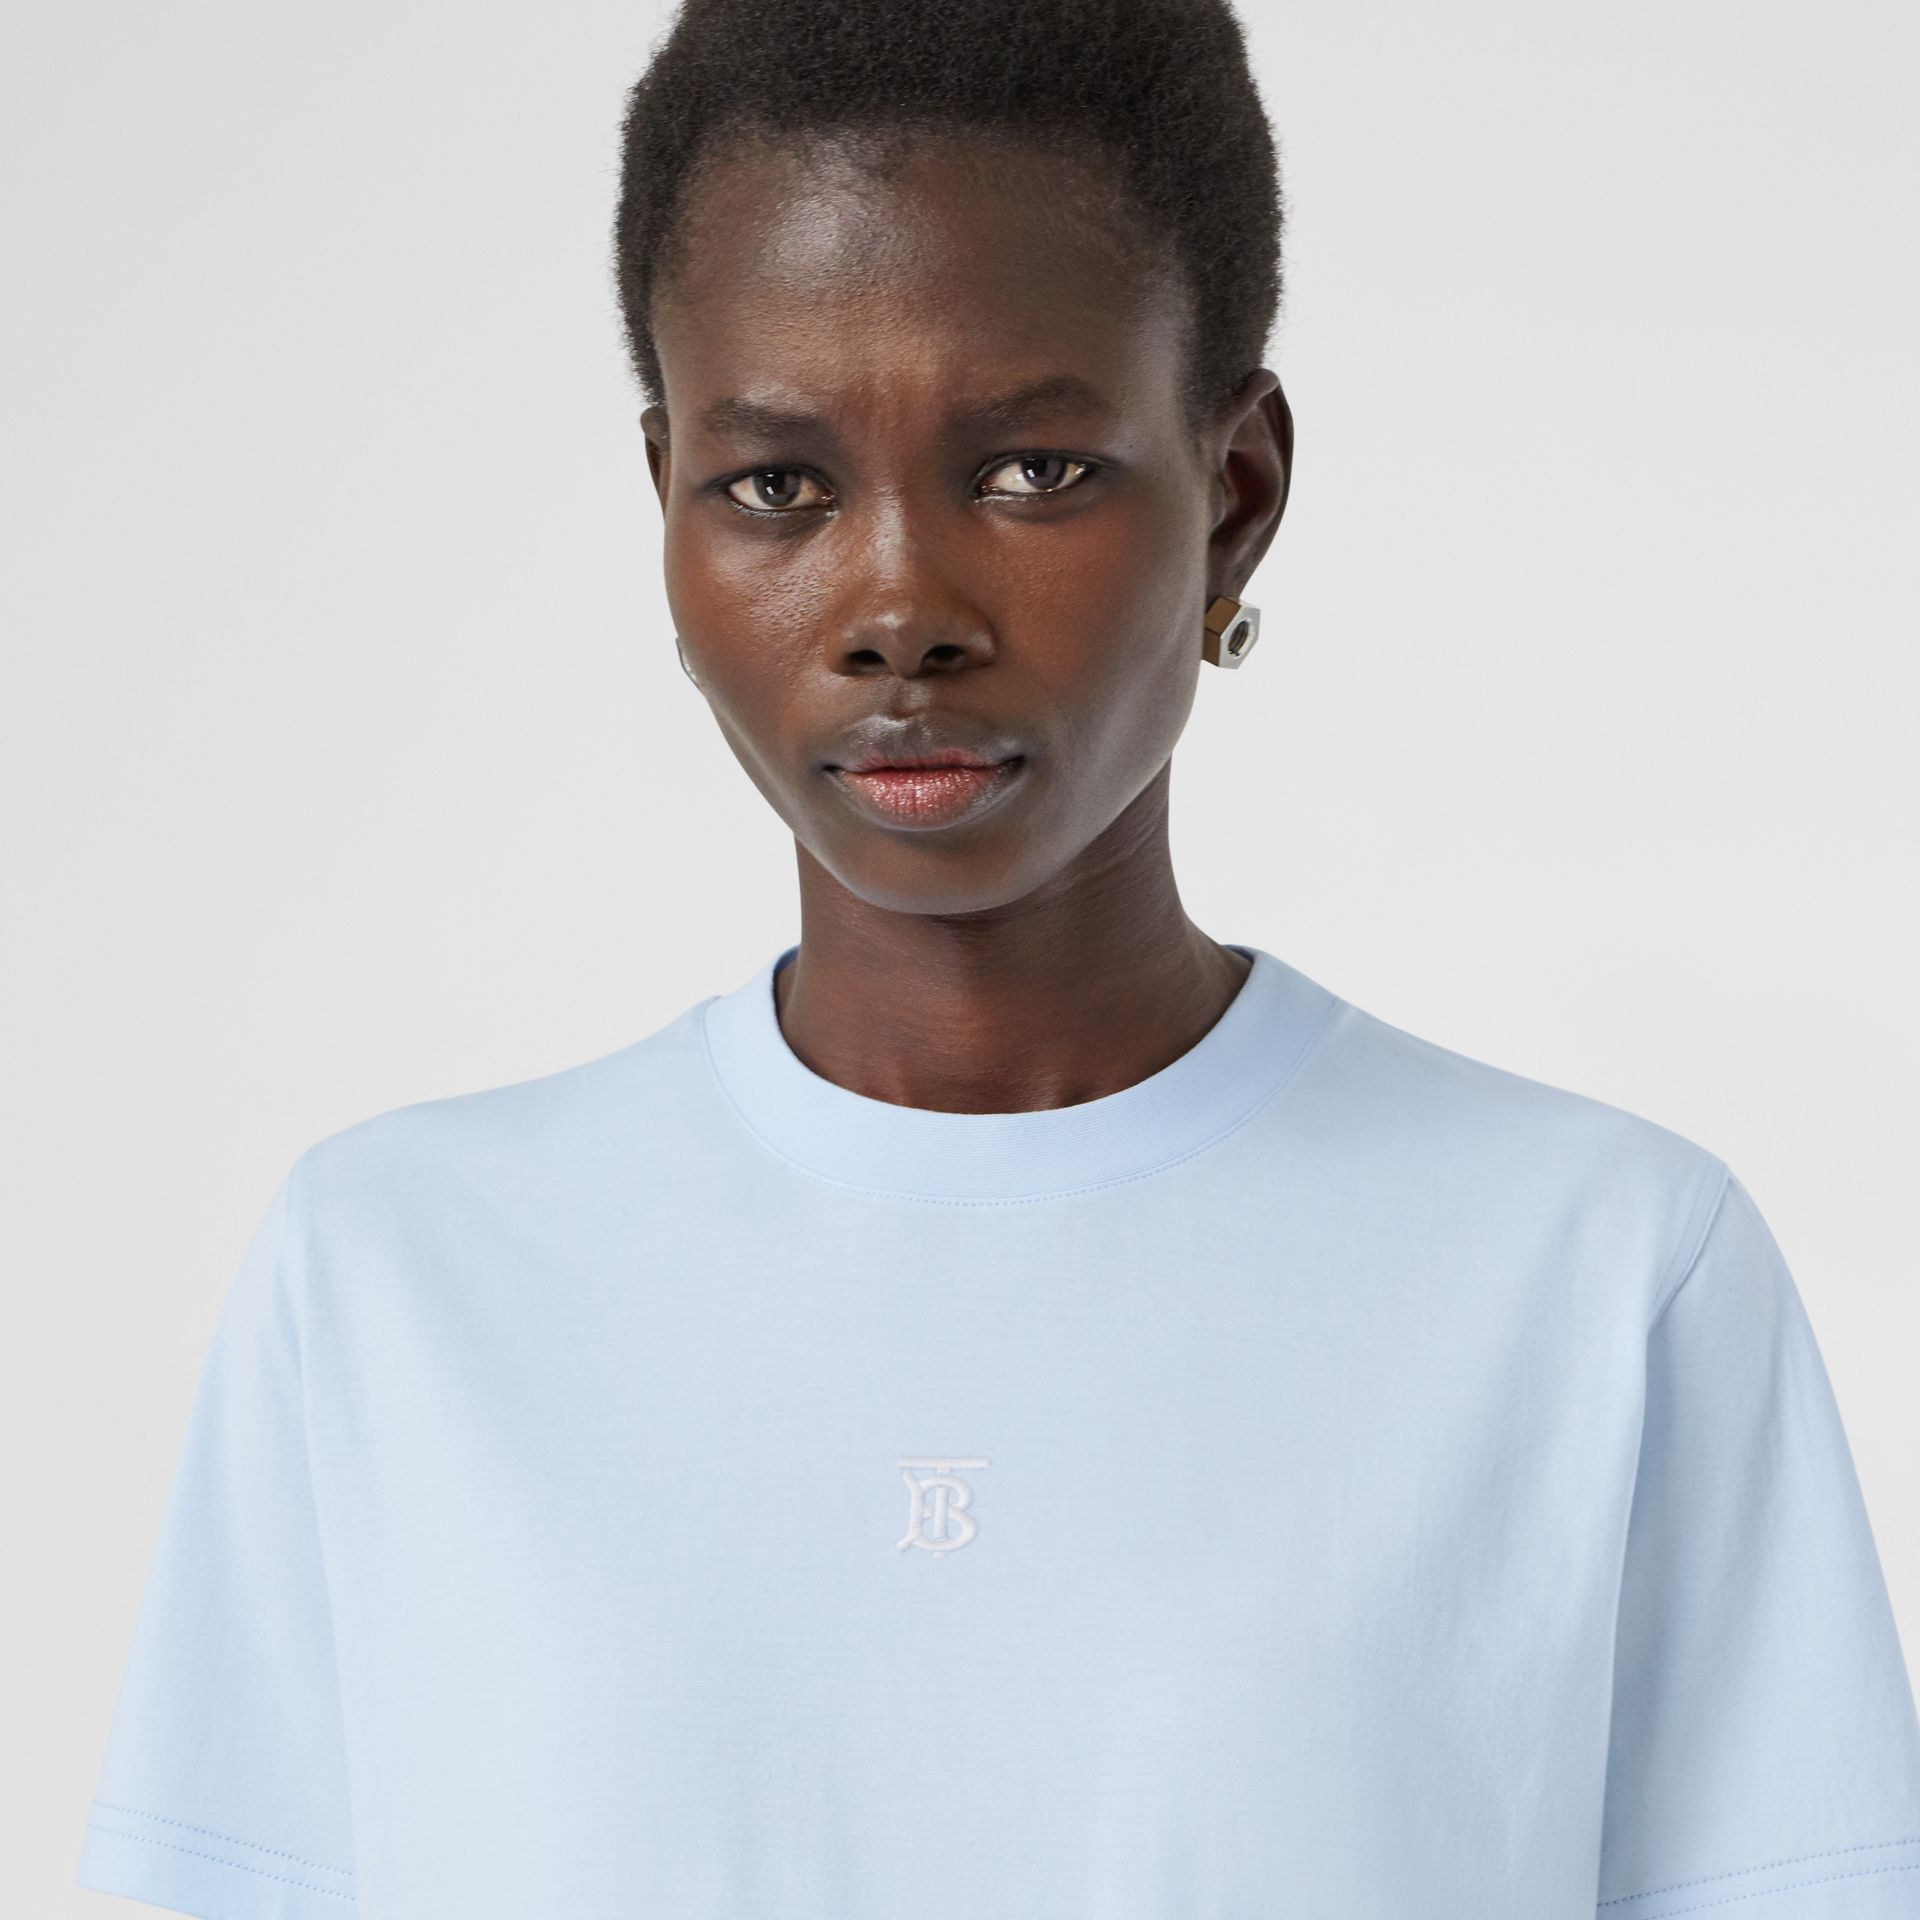 Monogram Motif Cotton T-shirt in Pale Blue - Women | Burberry - gallery image 1